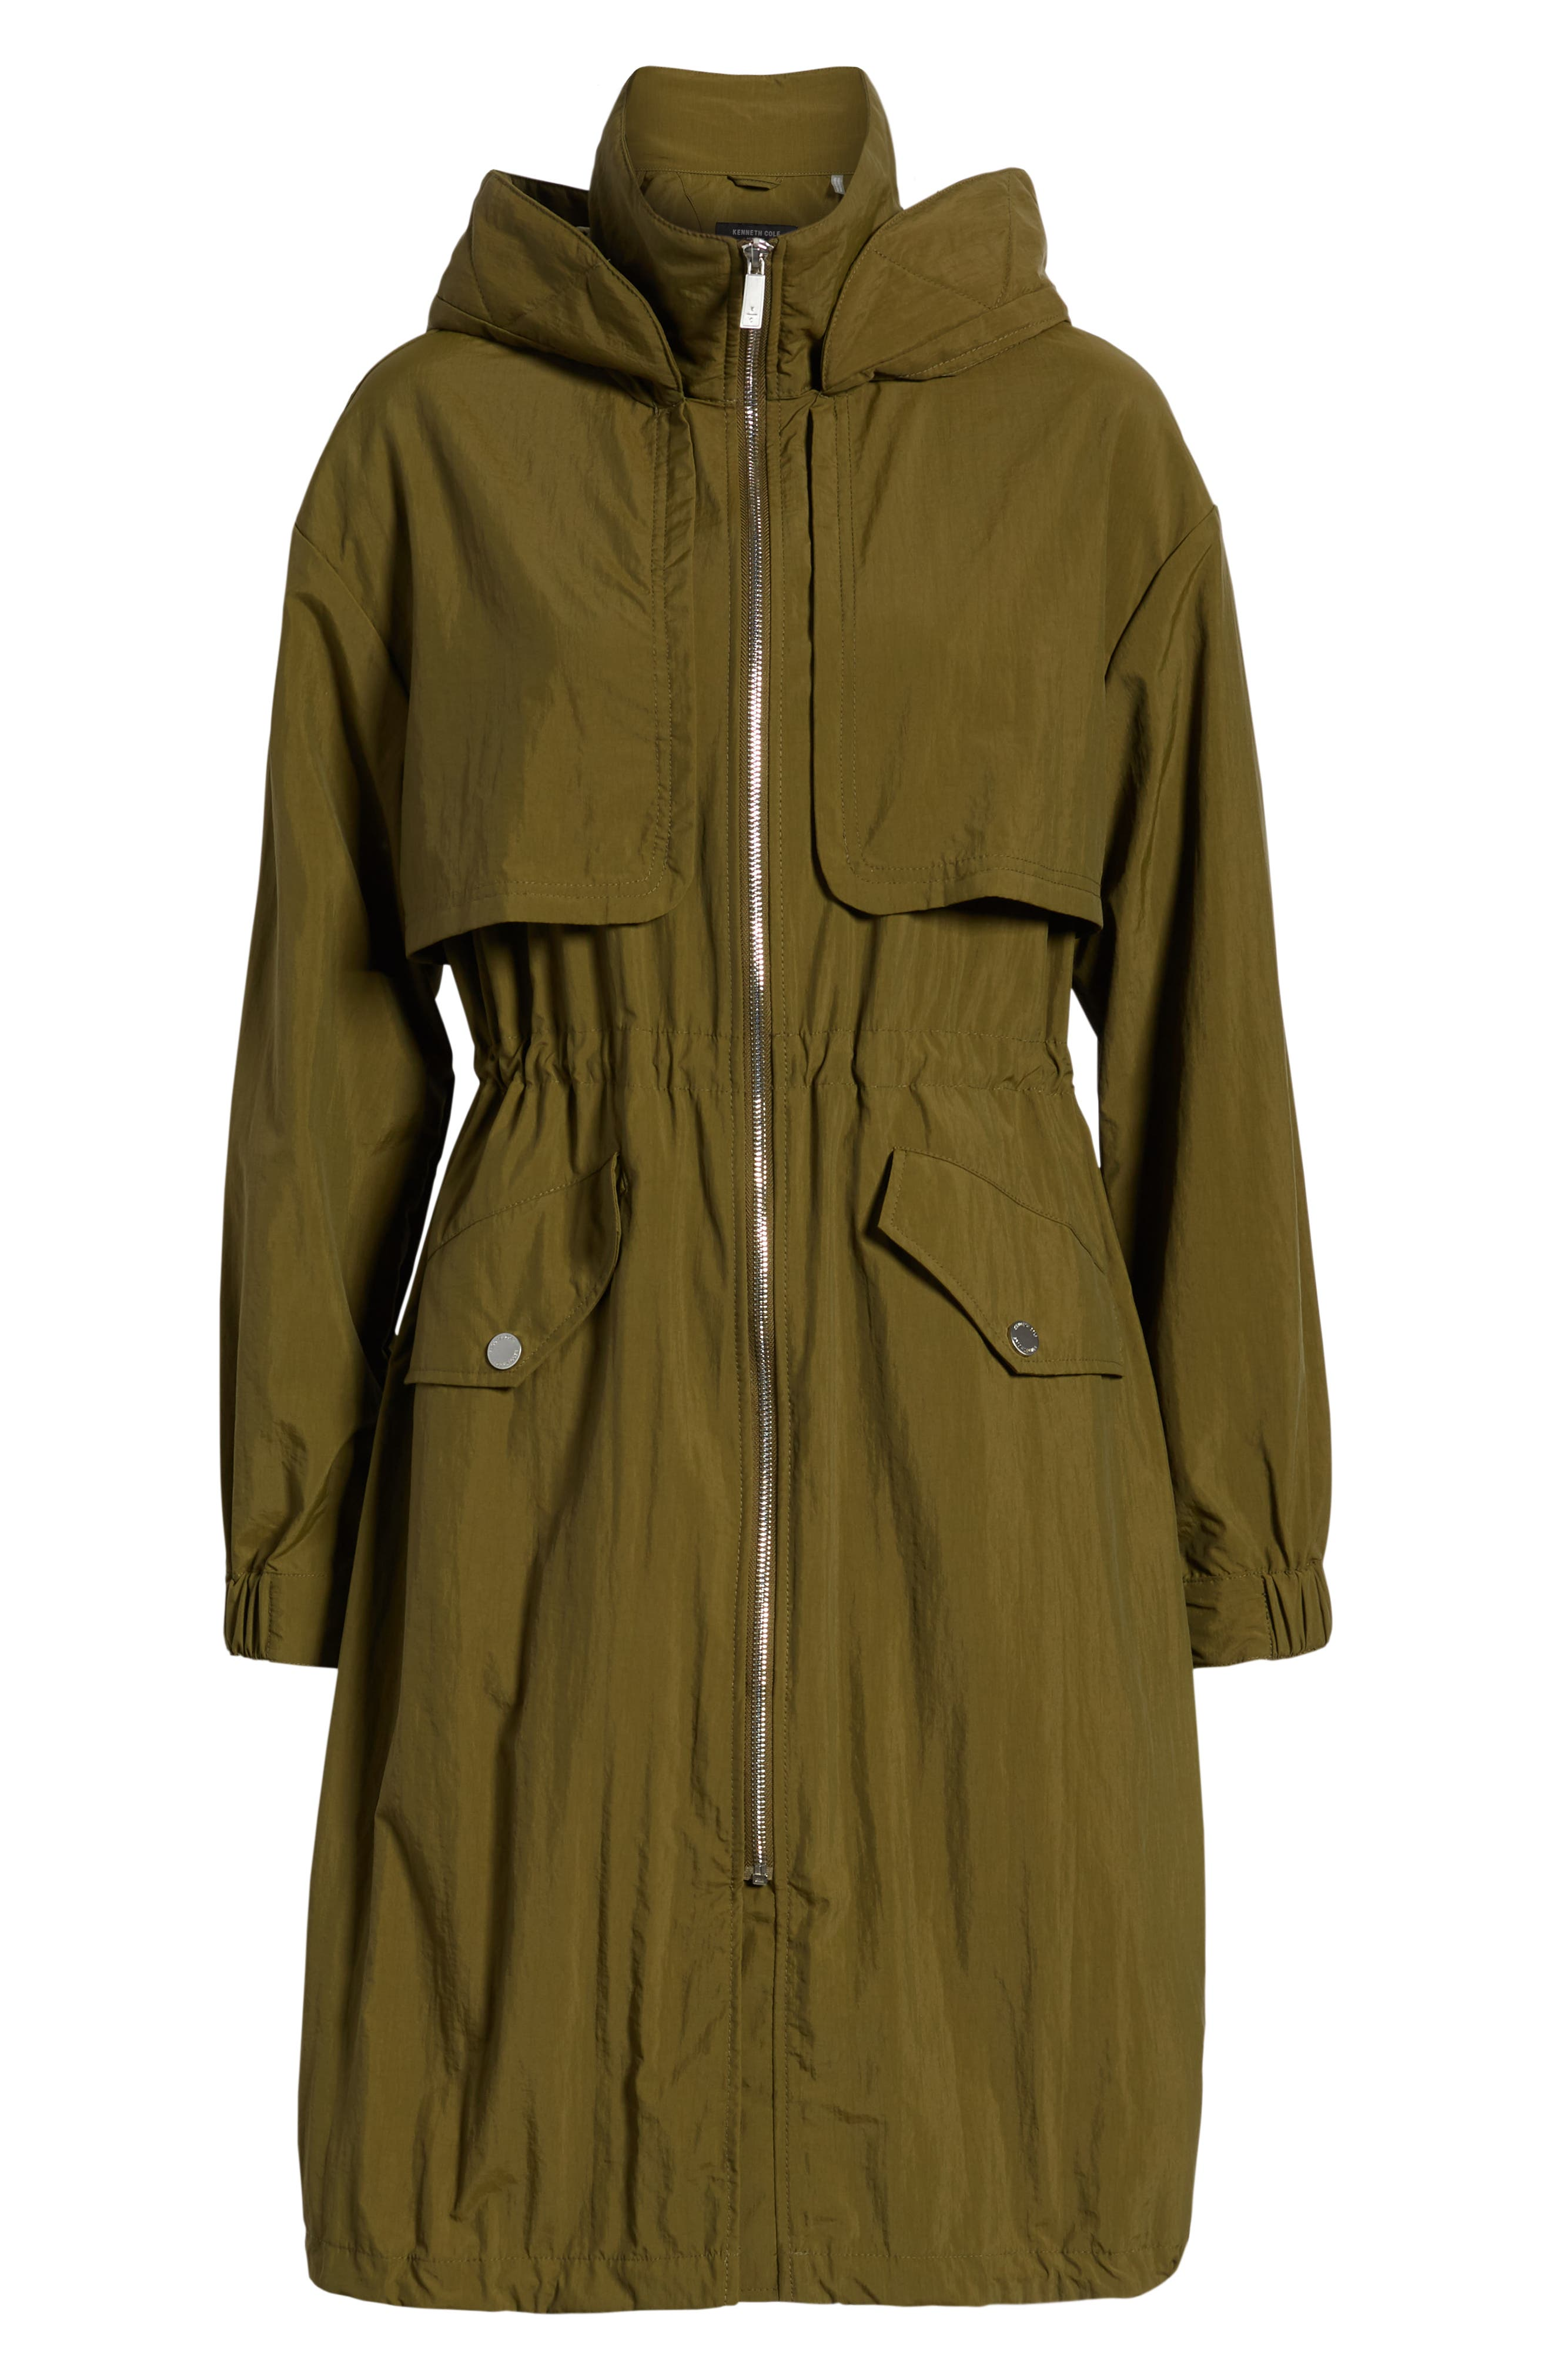 KENNETH COLE NEW YORK, Hooded Parka, Alternate thumbnail 6, color, OLIVE